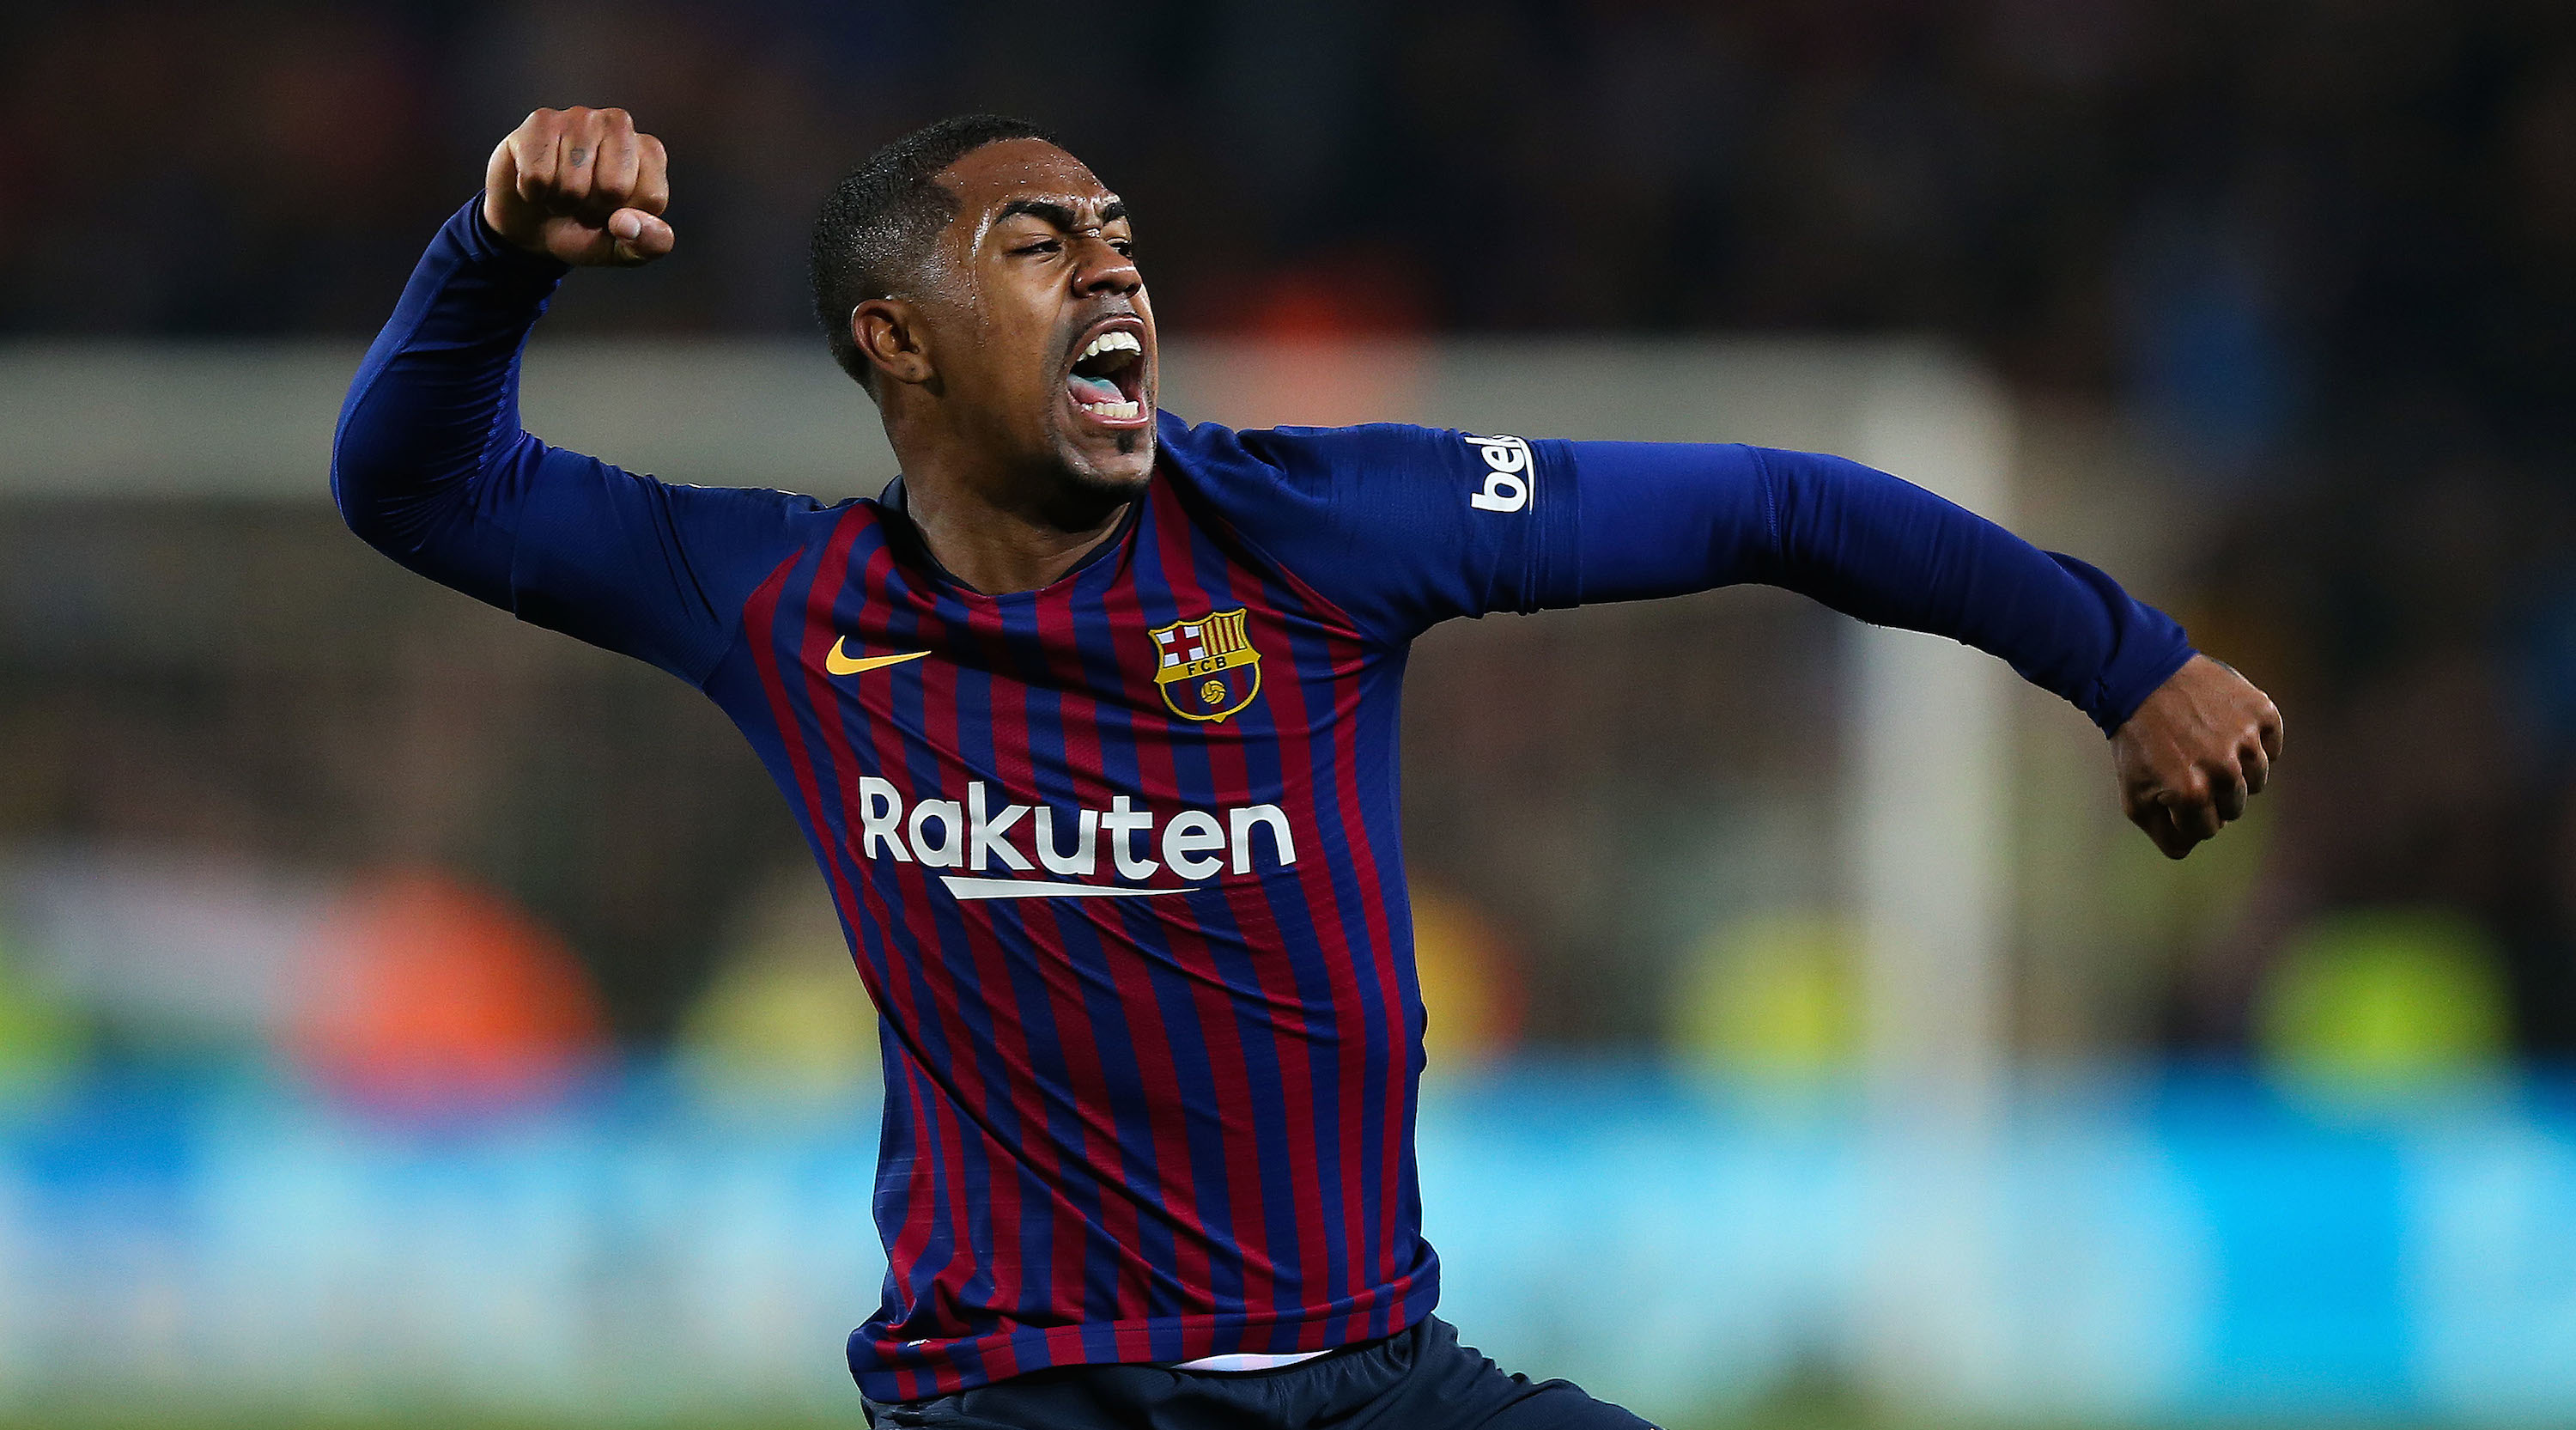 Malcom of FC Barcelona celebrates after scoring his team's first goal during the Copa del Semi Final first leg match between Barcelona and Real Madrid at Nou Camp on February 06, 2019 in Barcelona, Spain. (Photo by Angel Martinez/Getty Images)